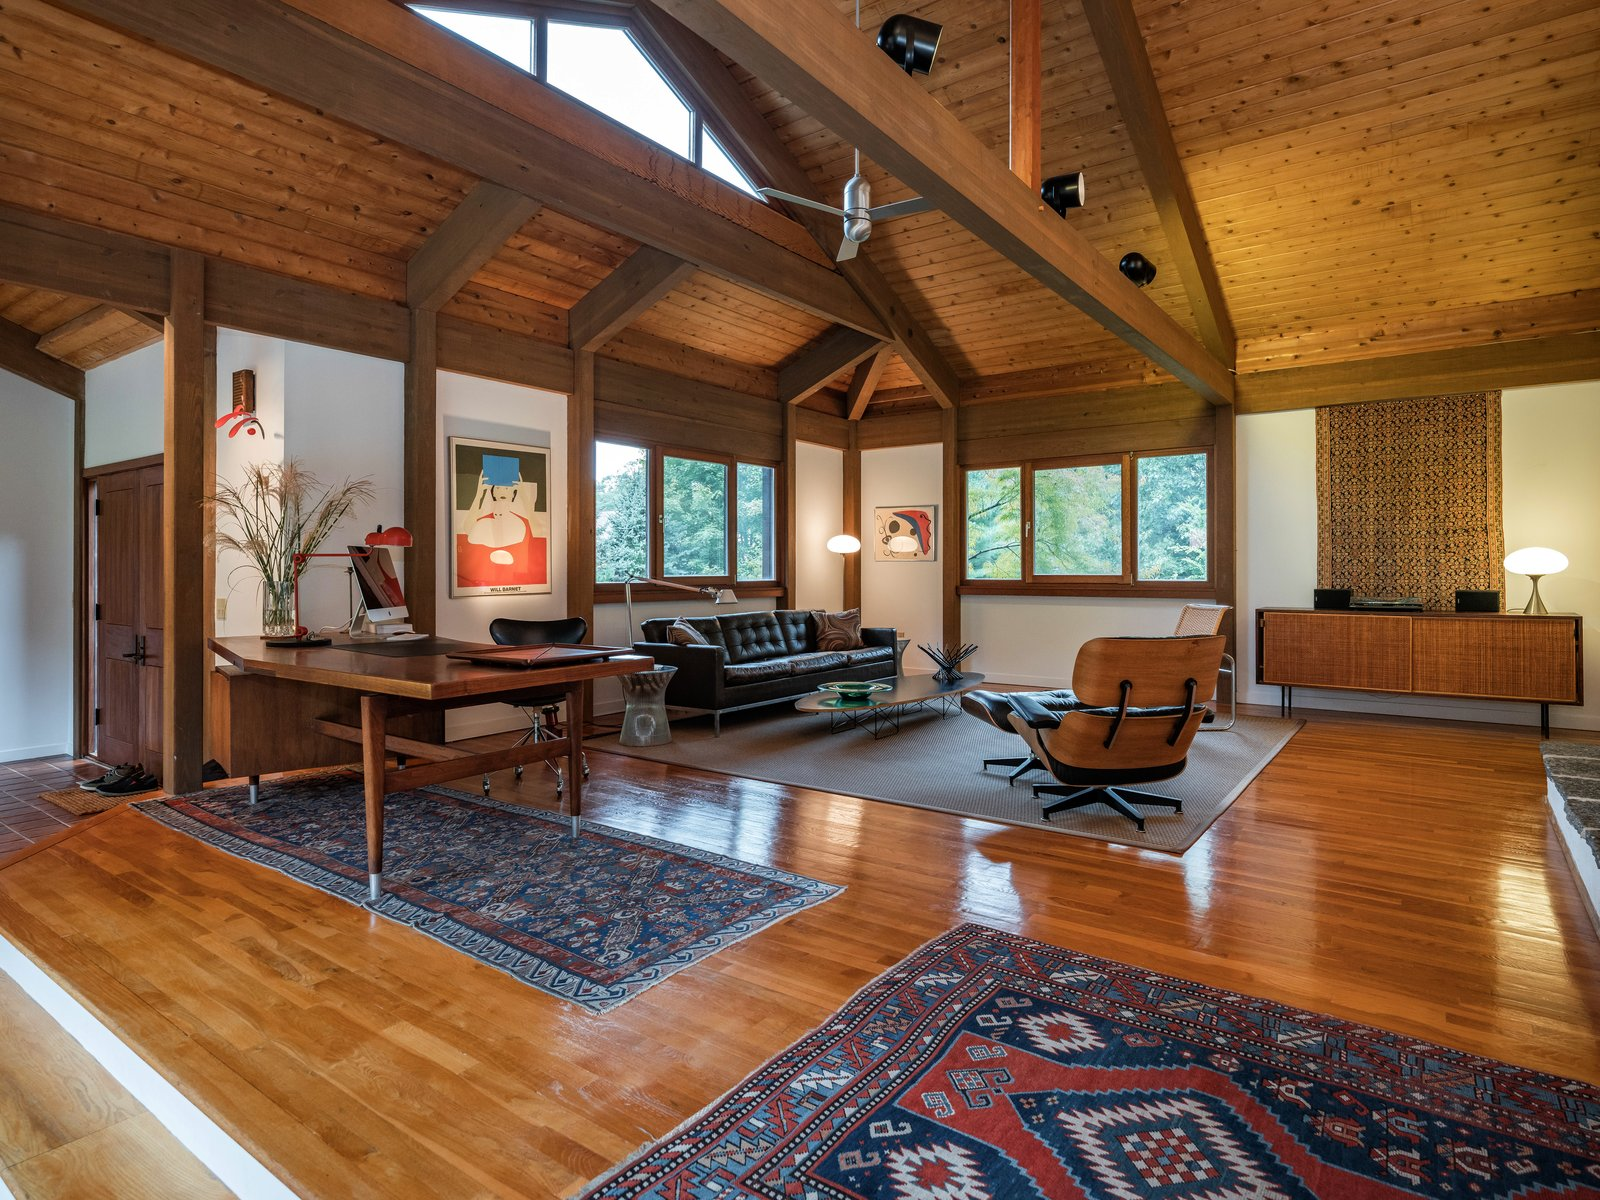 Living Room, Medium Hardwood Floor, Ceiling Lighting, Chair, Sofa, Storage, Console Tables, Lamps, Coffee Tables, and Table Lighting  Photo 1 of 16 in A Midcentury-Inspired Post-and-Beam Home Hits the Market in Connecticut For $595K